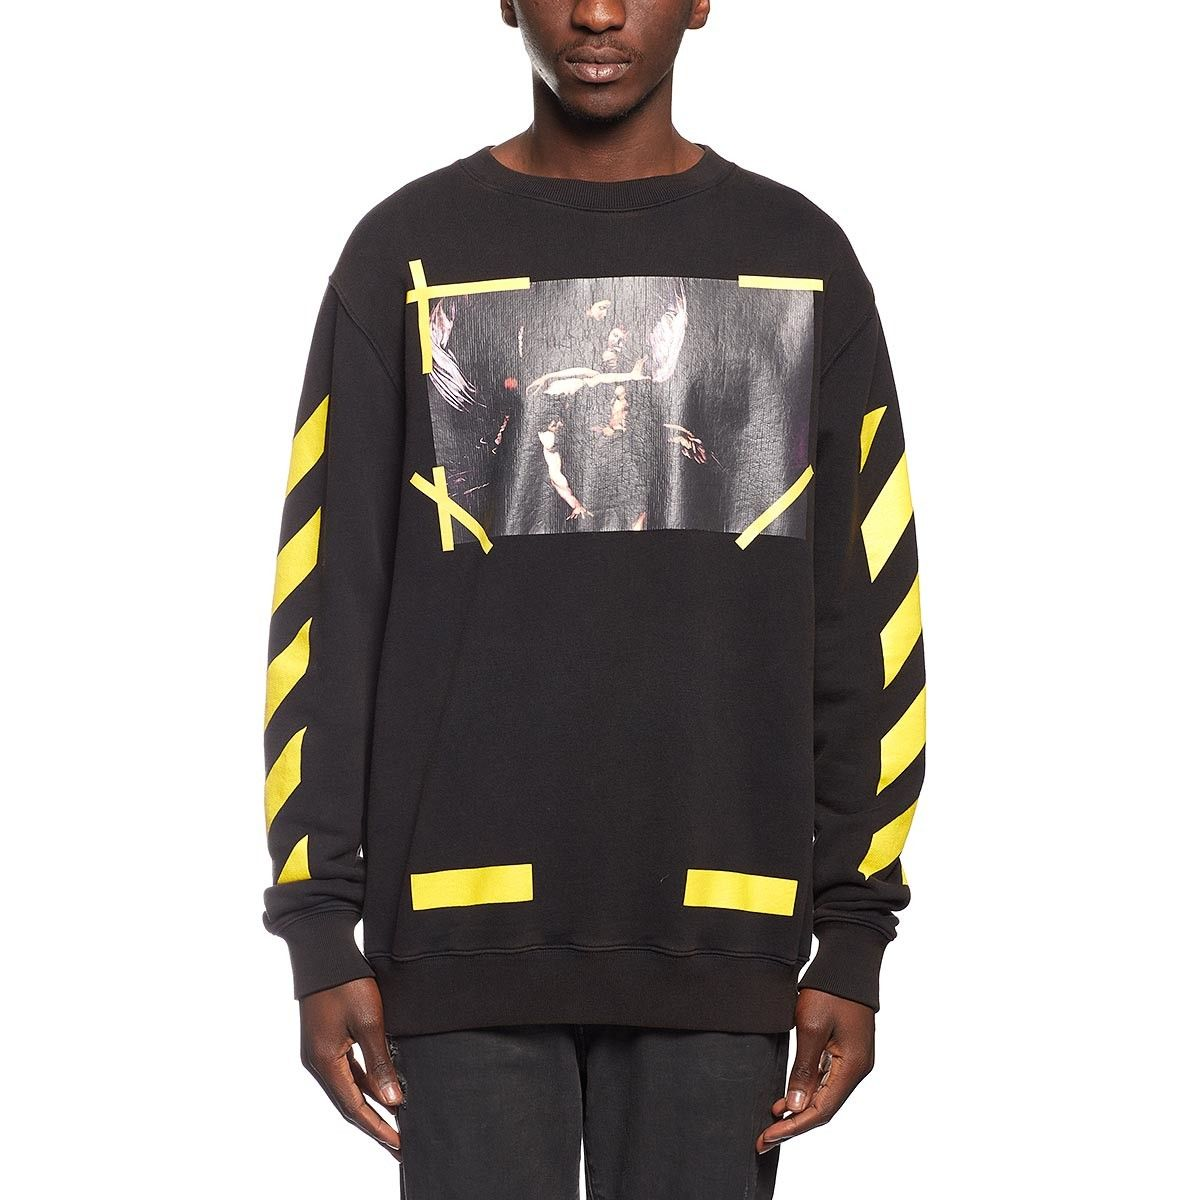 7 Opere sweatshirt from the F/W2016-17 Off-White c/o Virgil Abloh collection in black